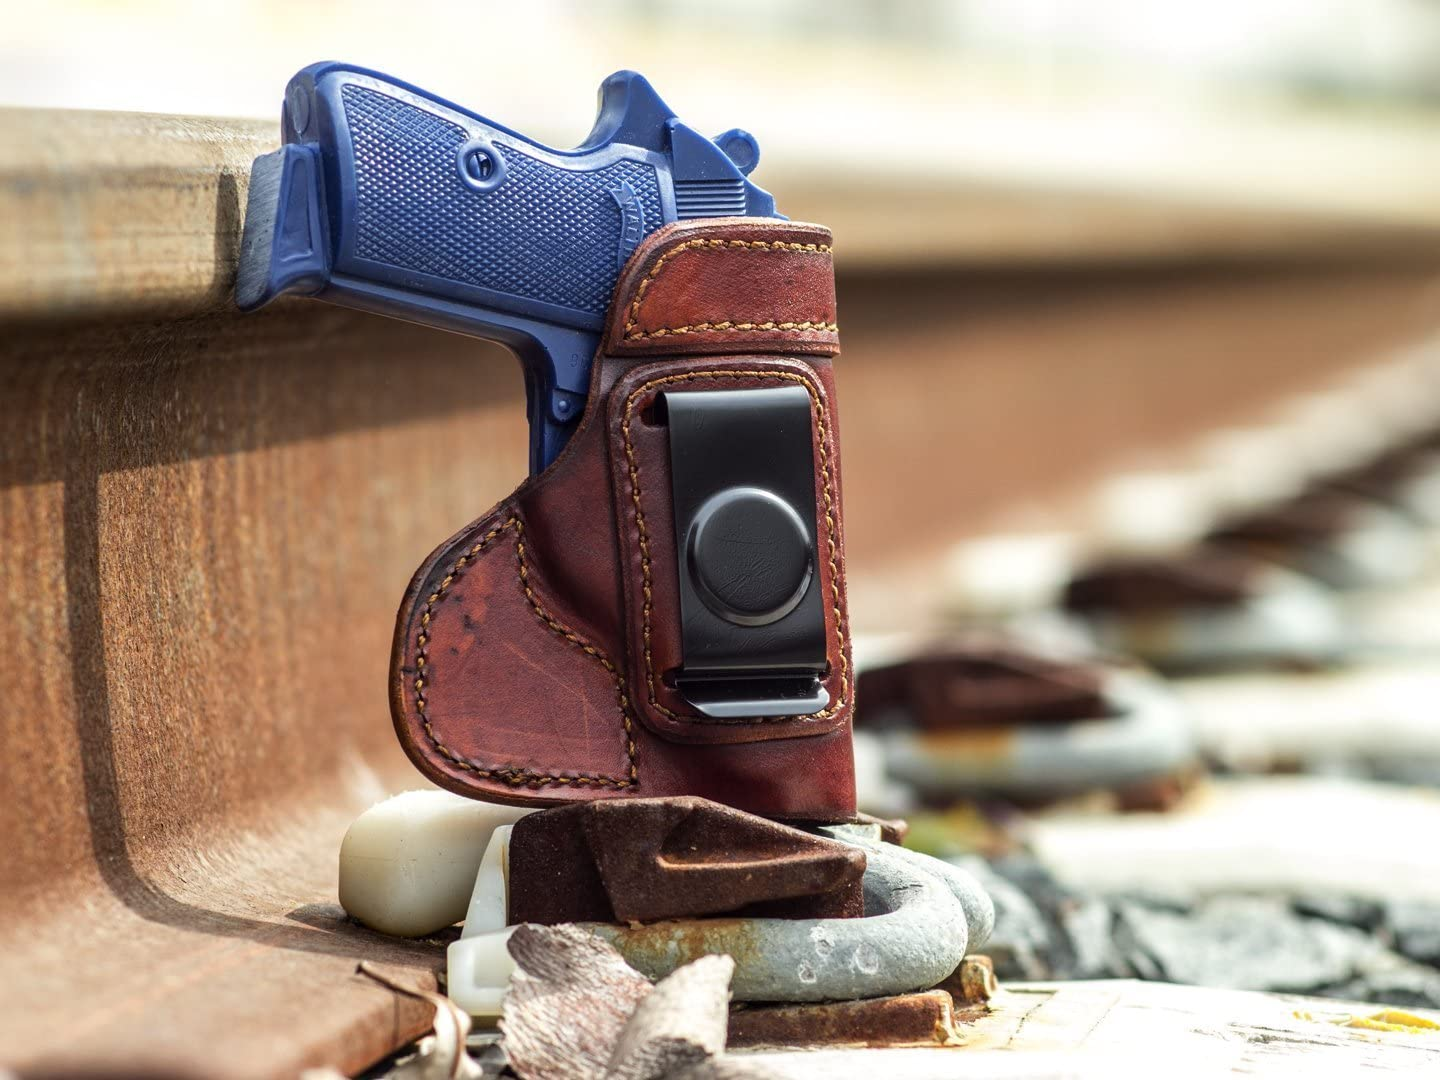 OUTBAGS Max 61% OFF USA LS3PPK Full Grain Heavy IWB Gu 70% OFF Outlet Conceal Leather Carry